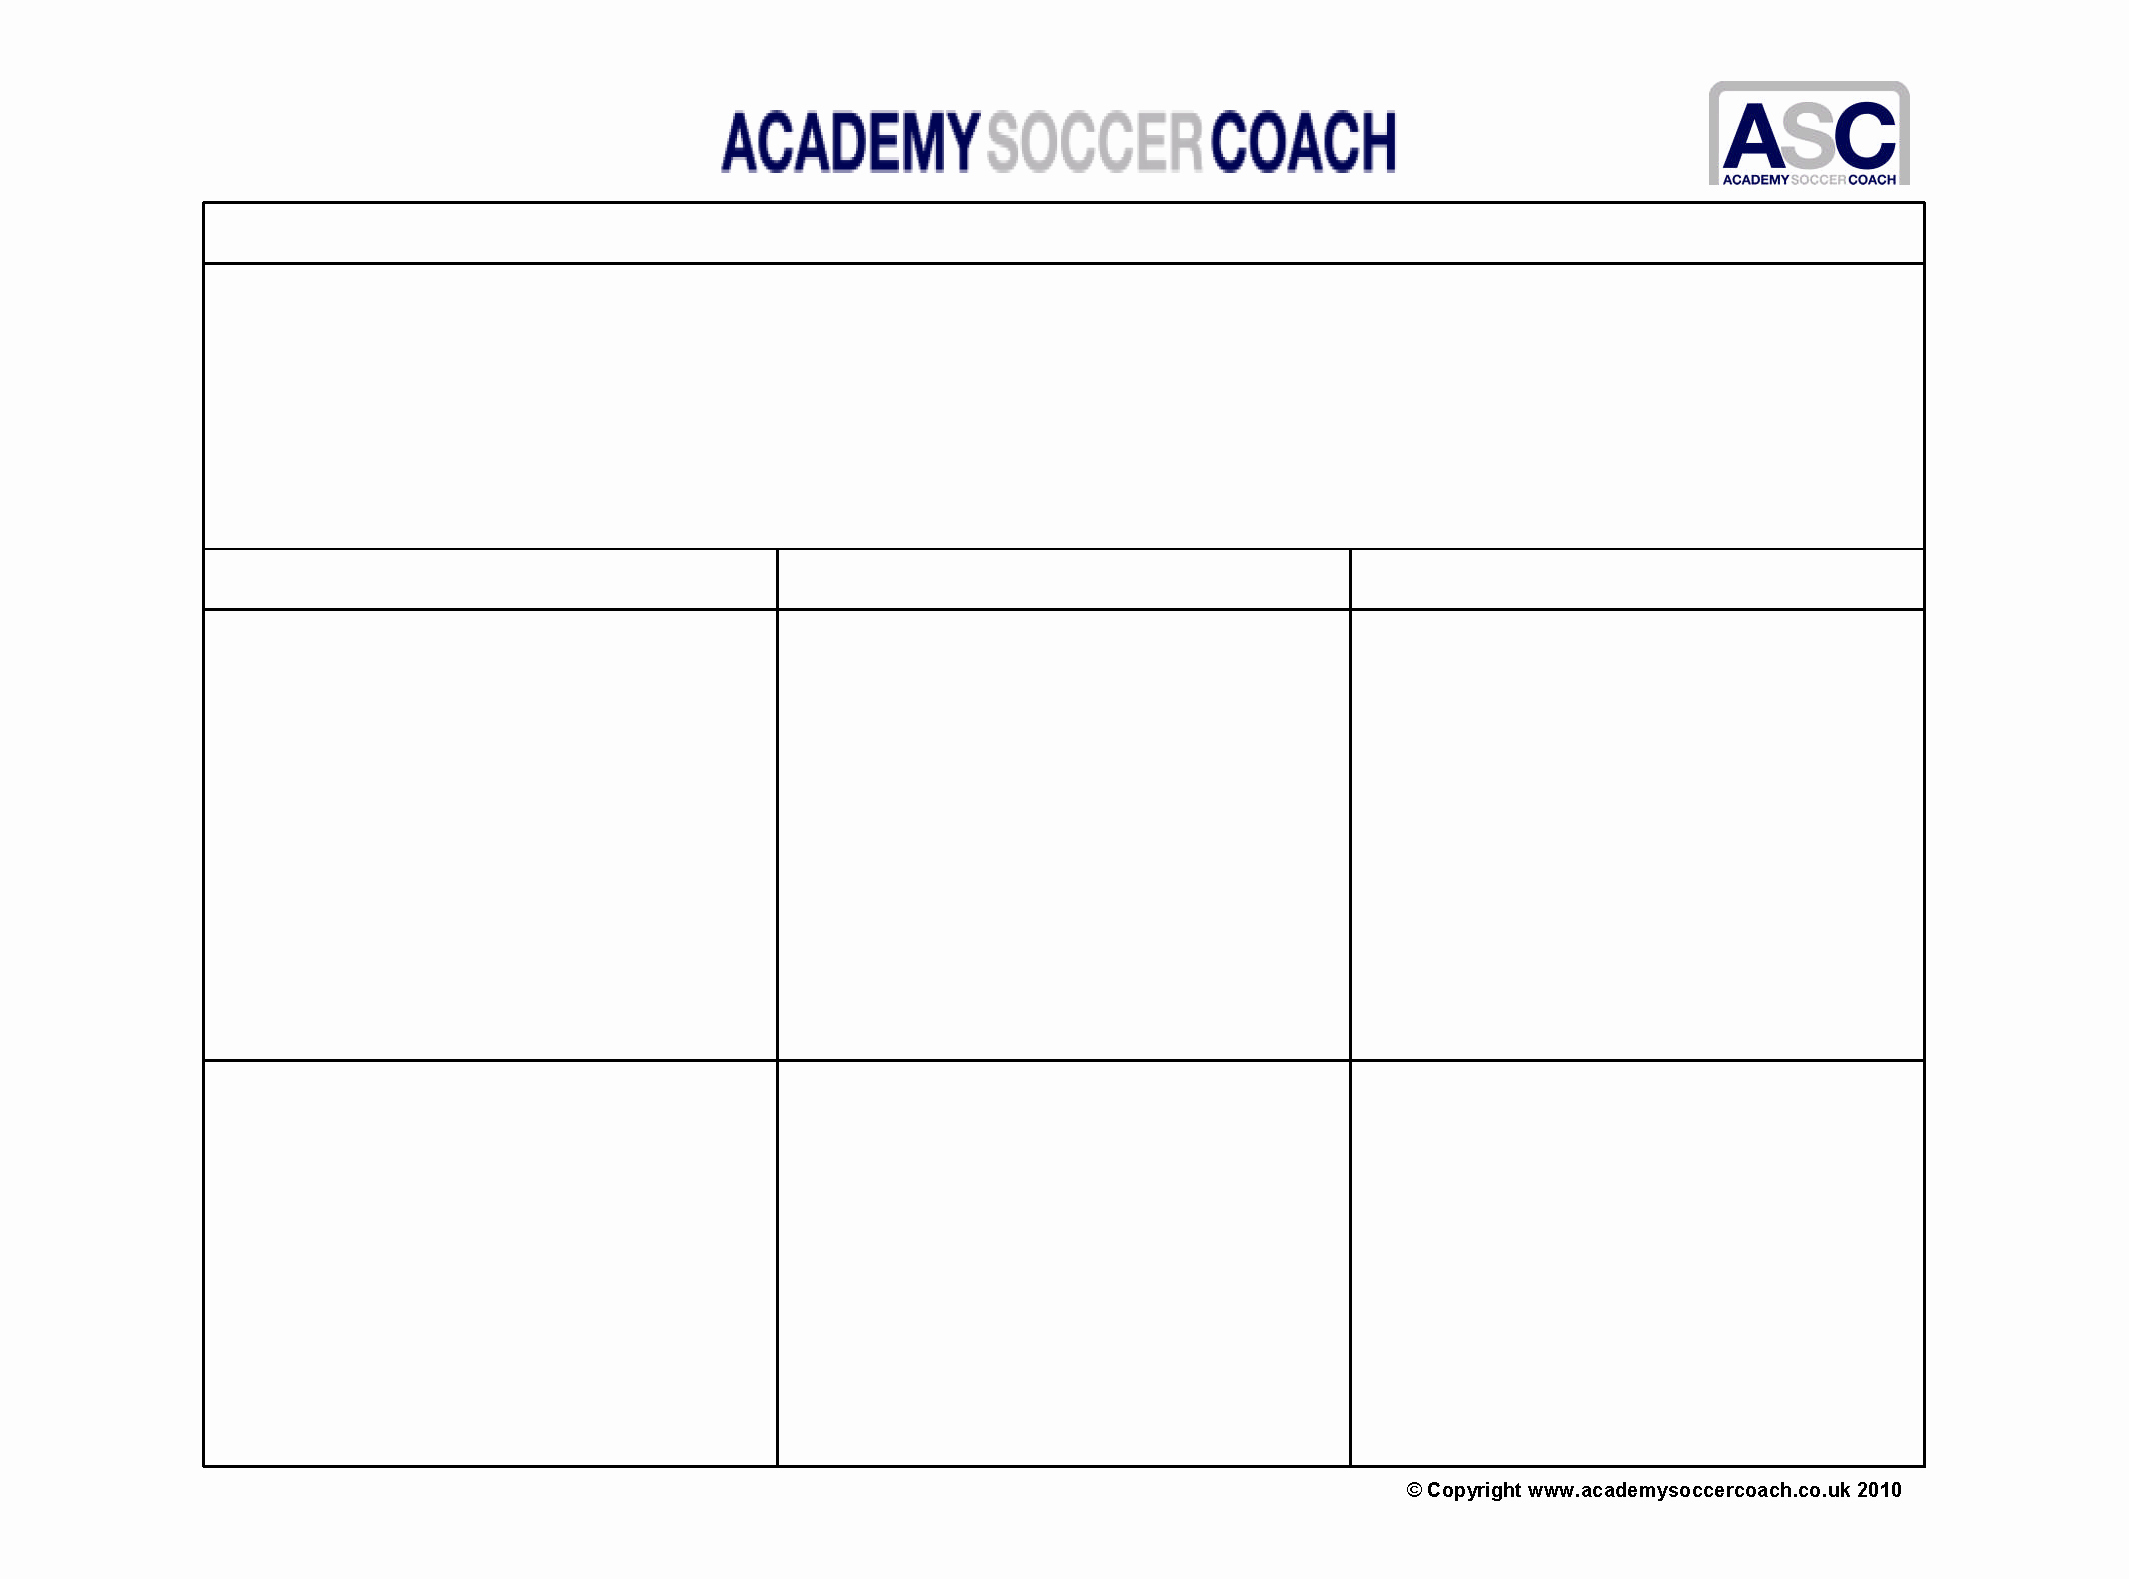 Football Practice Template Beautiful Free Downloads Academy soccer Coach